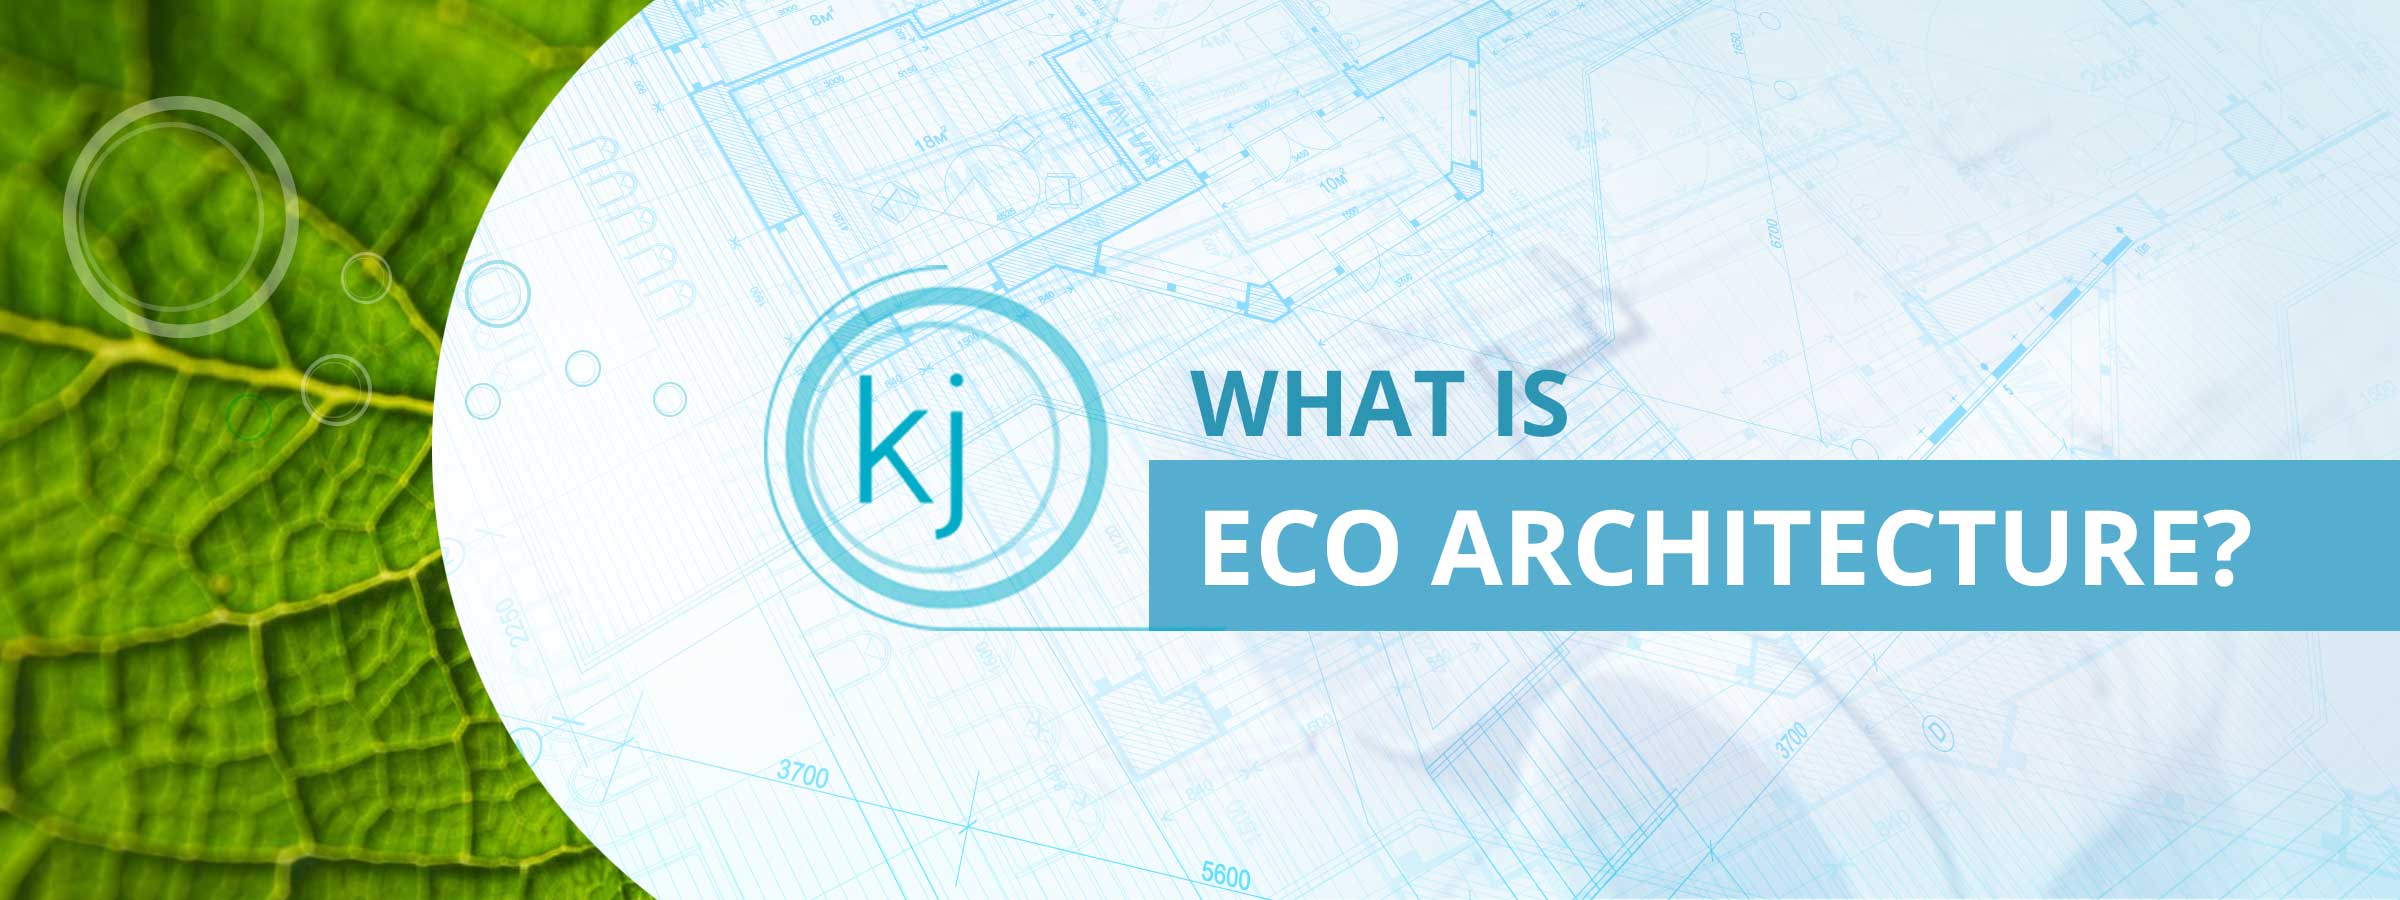 What is eco-architecture?